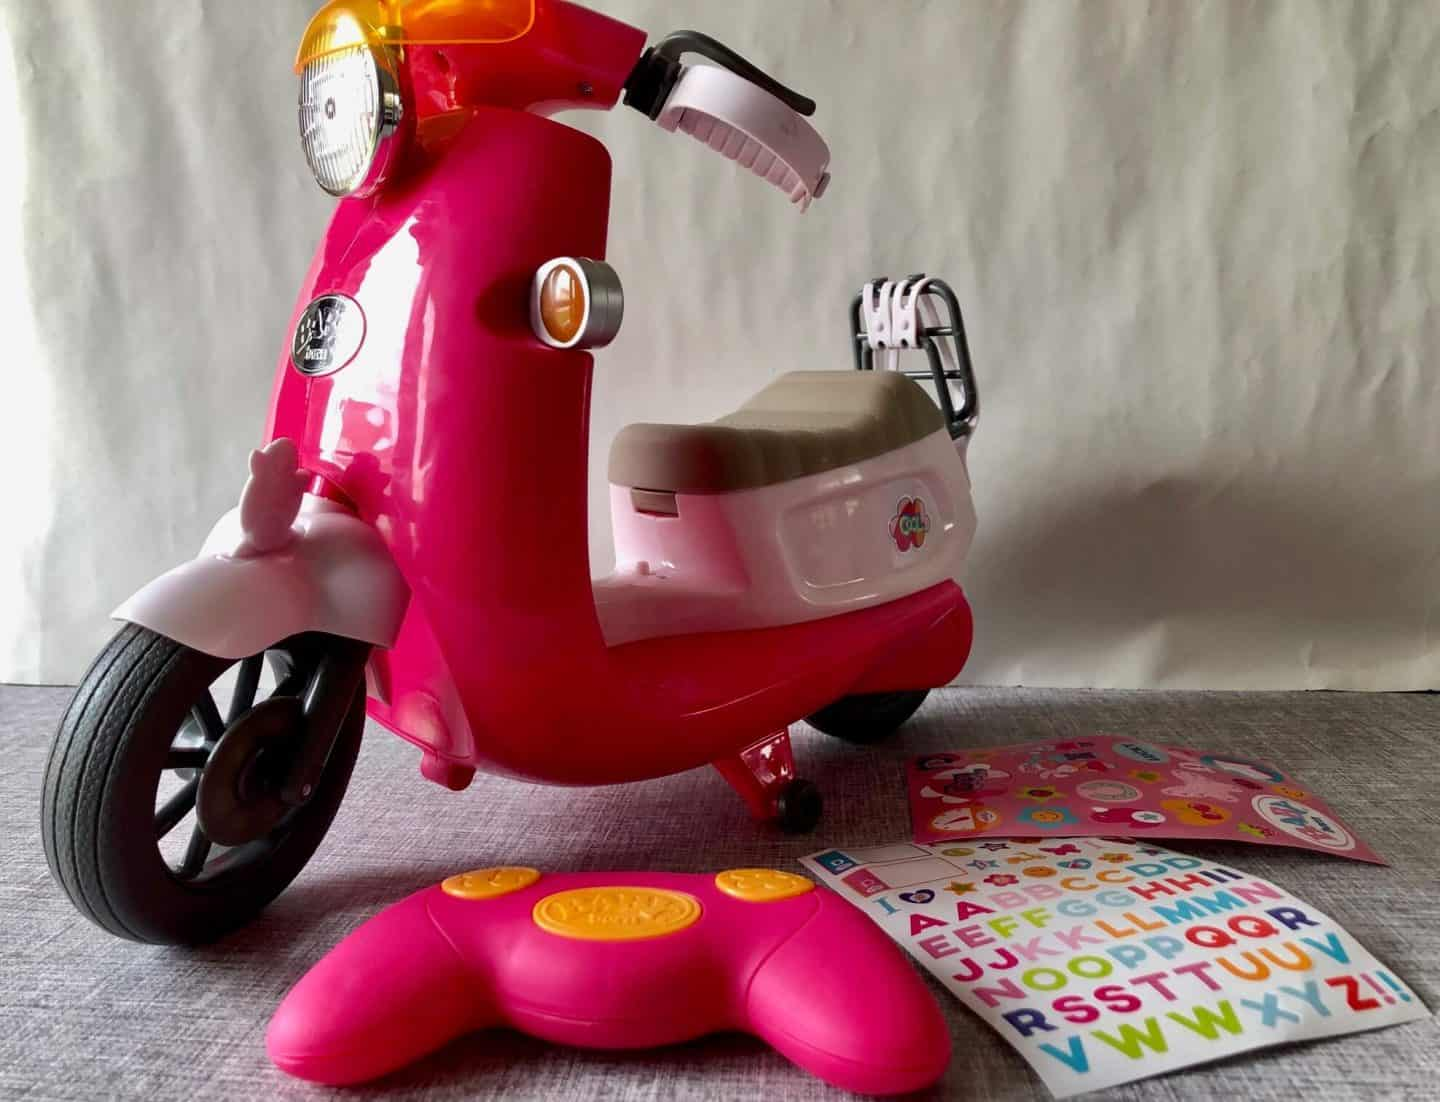 Baby Born Remote Controlled City Scooter with stickers